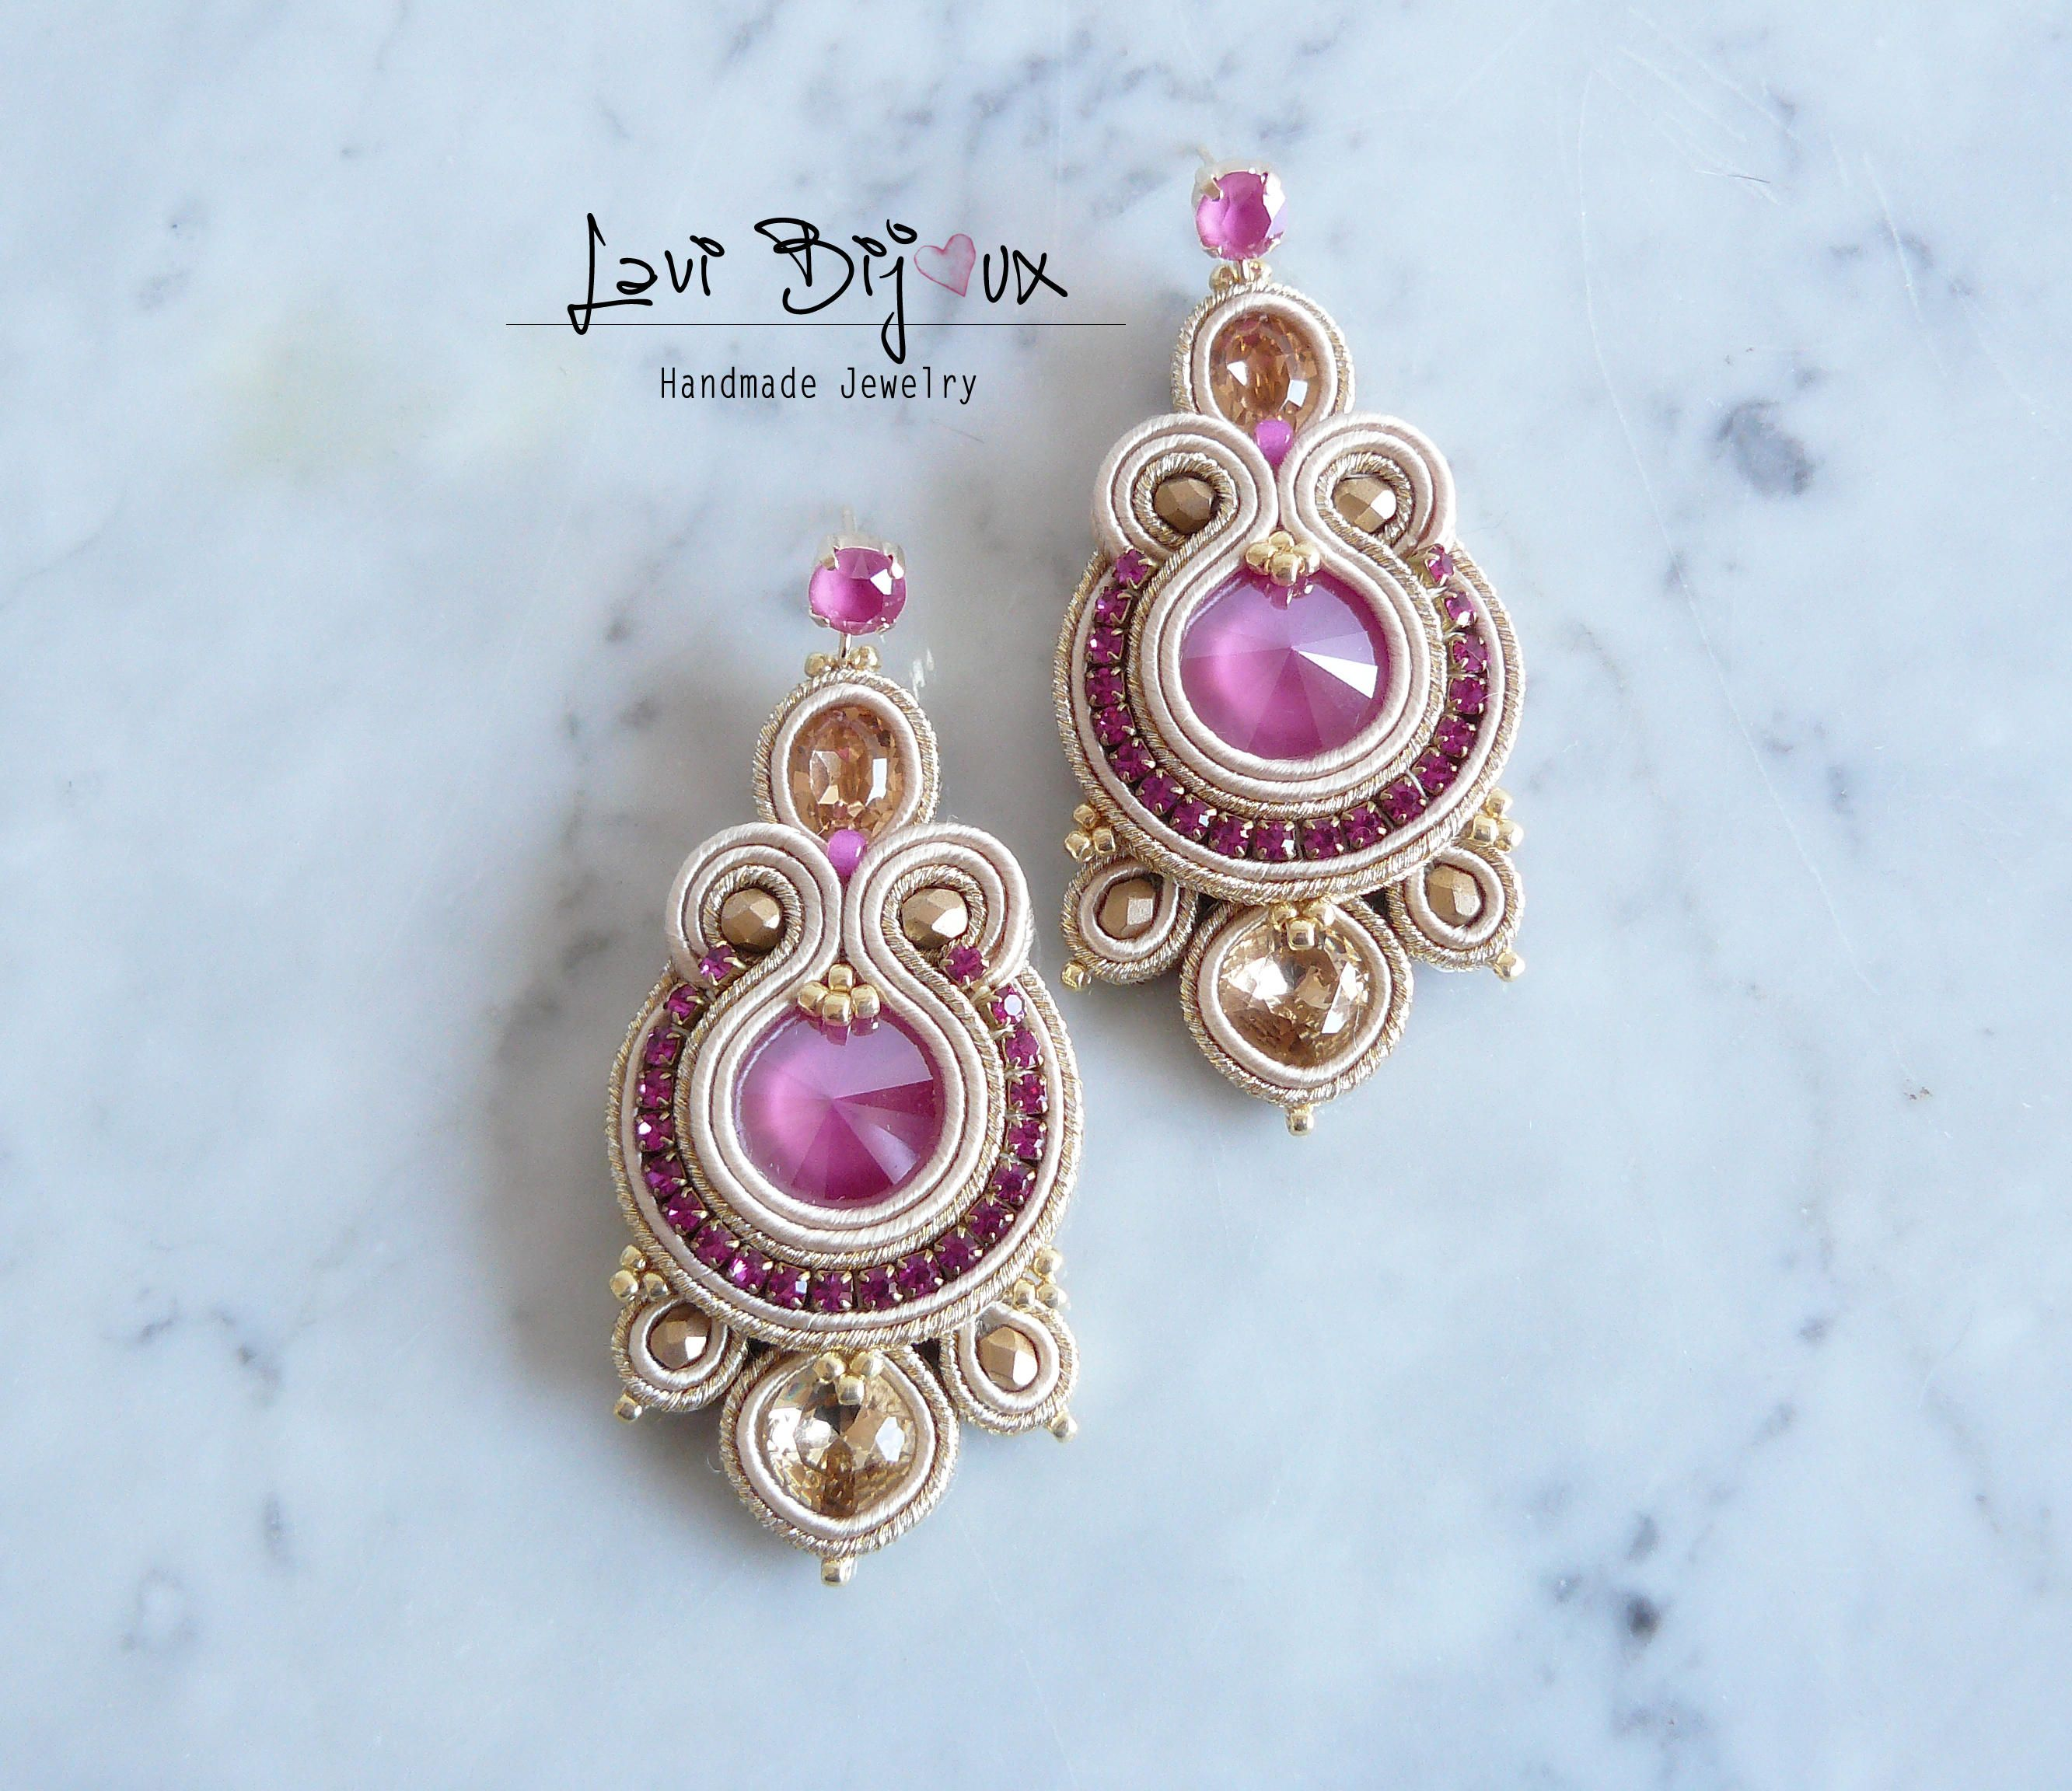 jewellery soutache embroidered hand handmade pin earrings